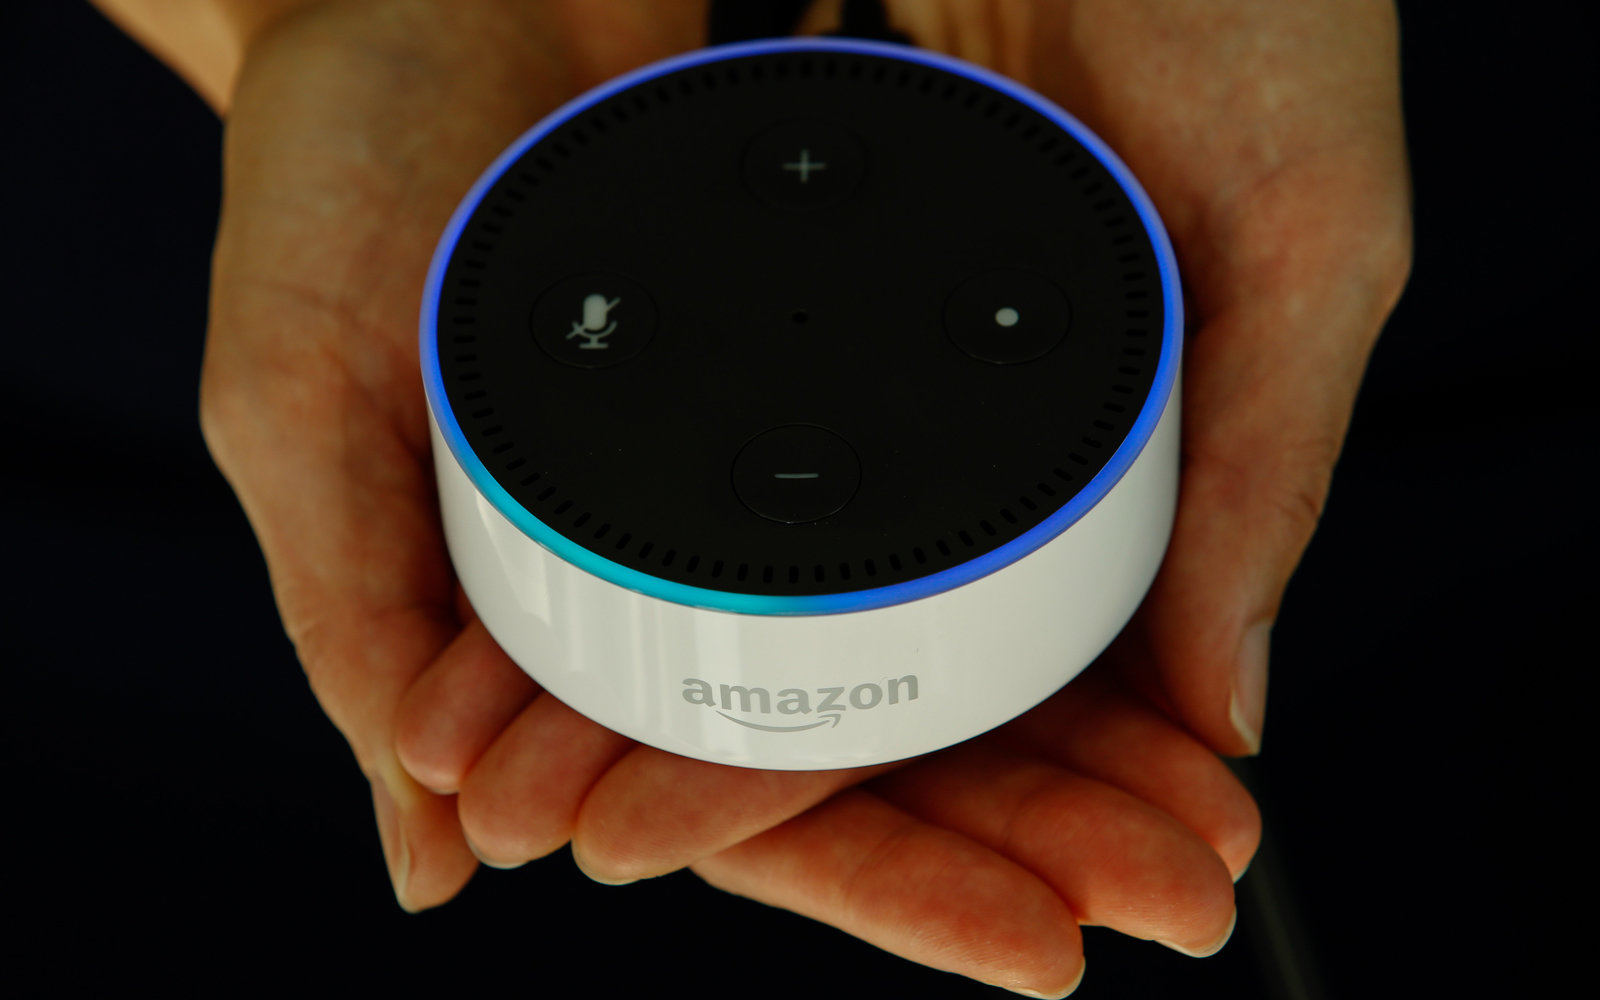 How to Make Amazon Echo Hear You Better